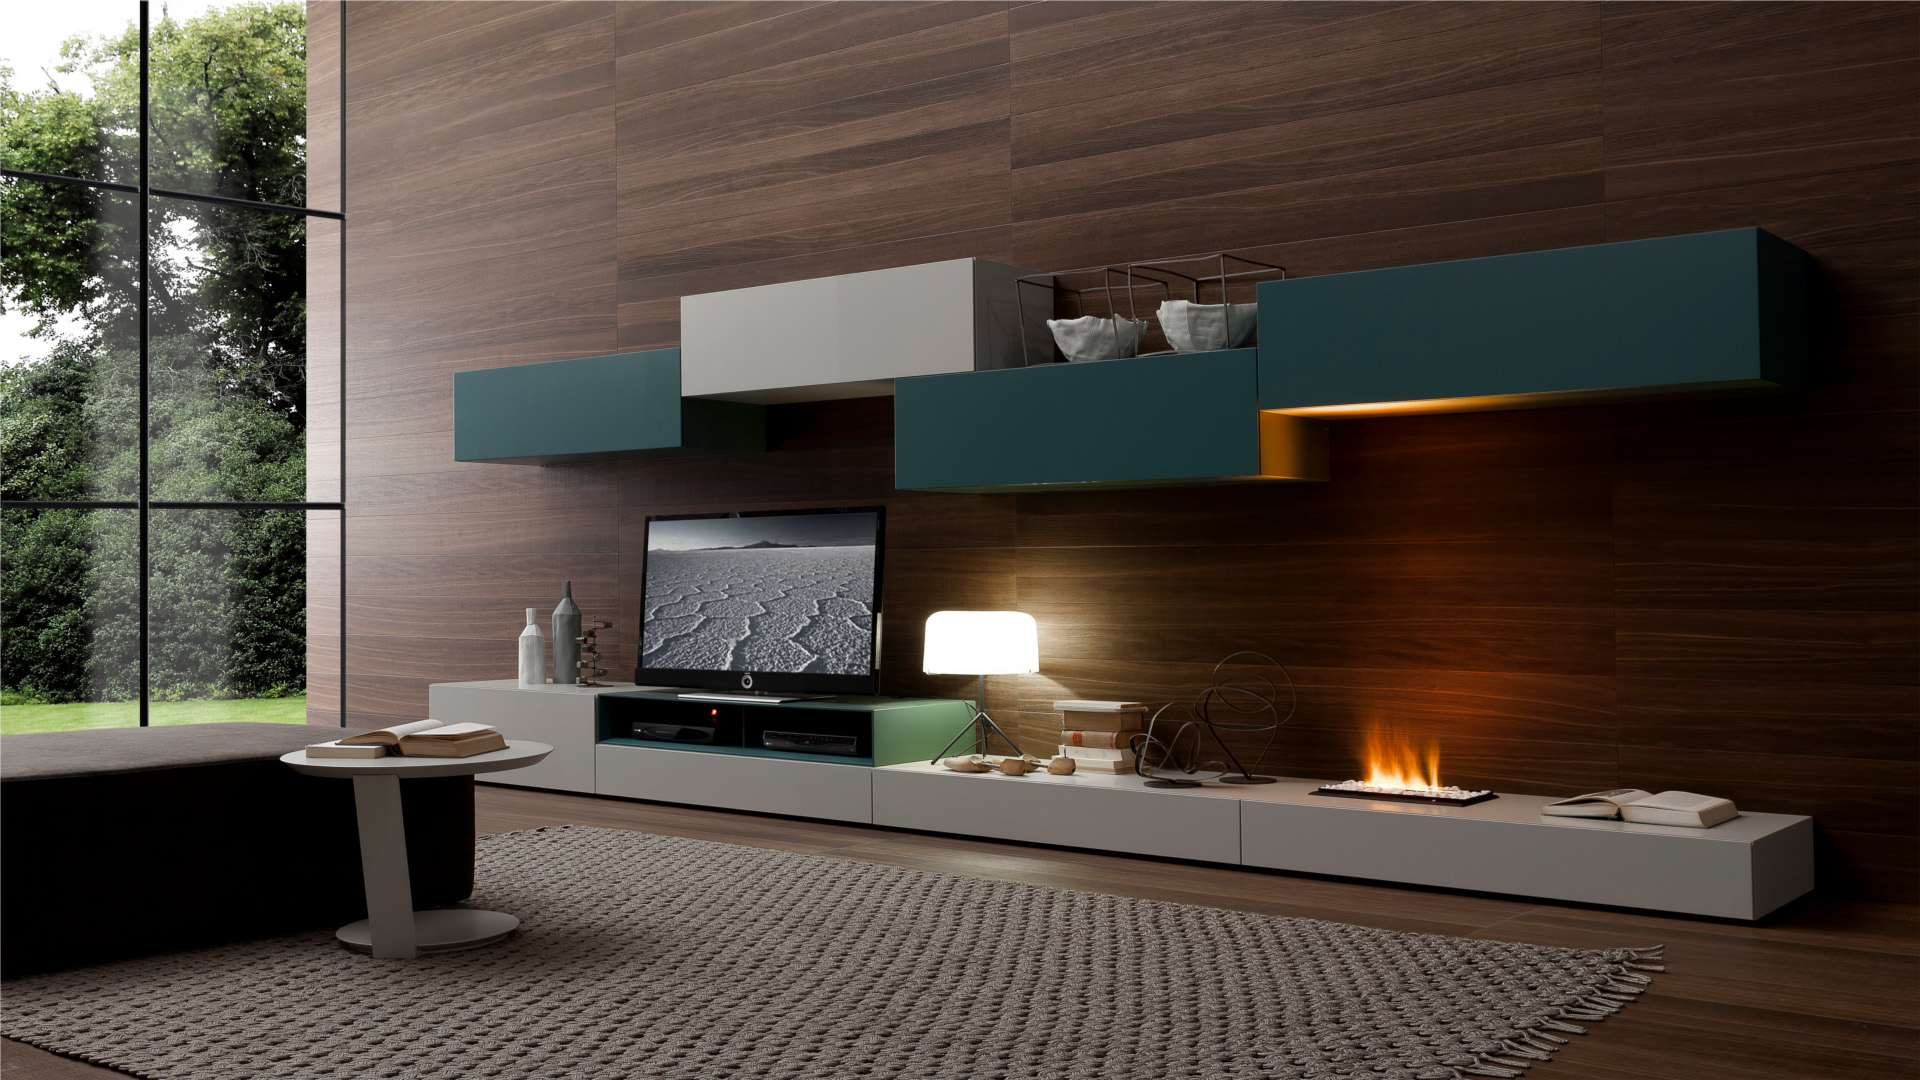 Image of: Wall Wood Paneling Design